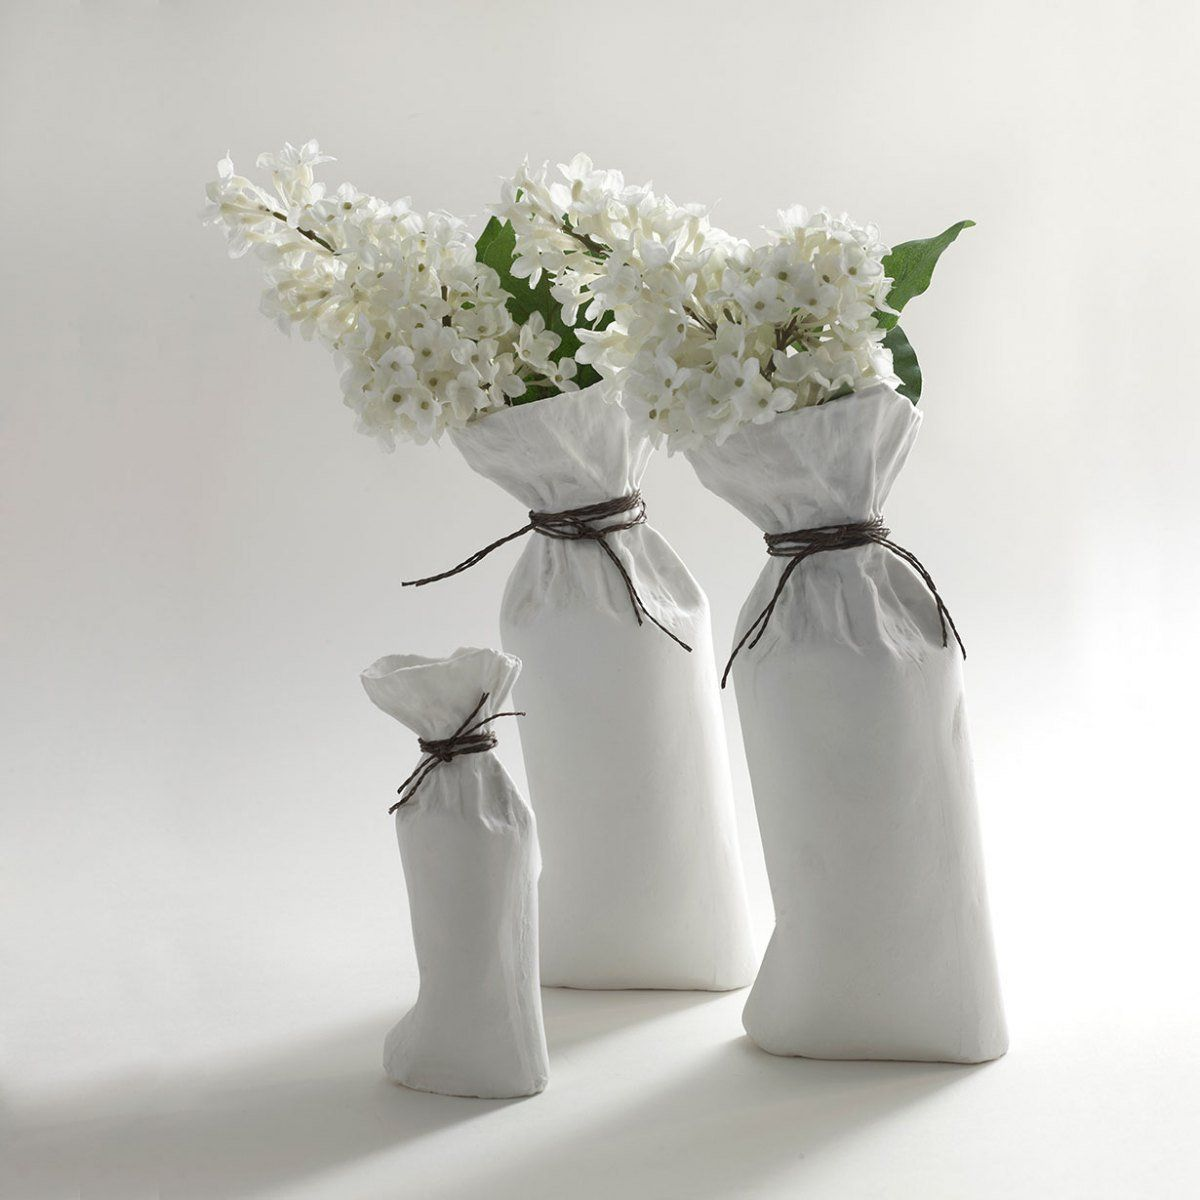 The Sacchetto Vase is a ceramic flower